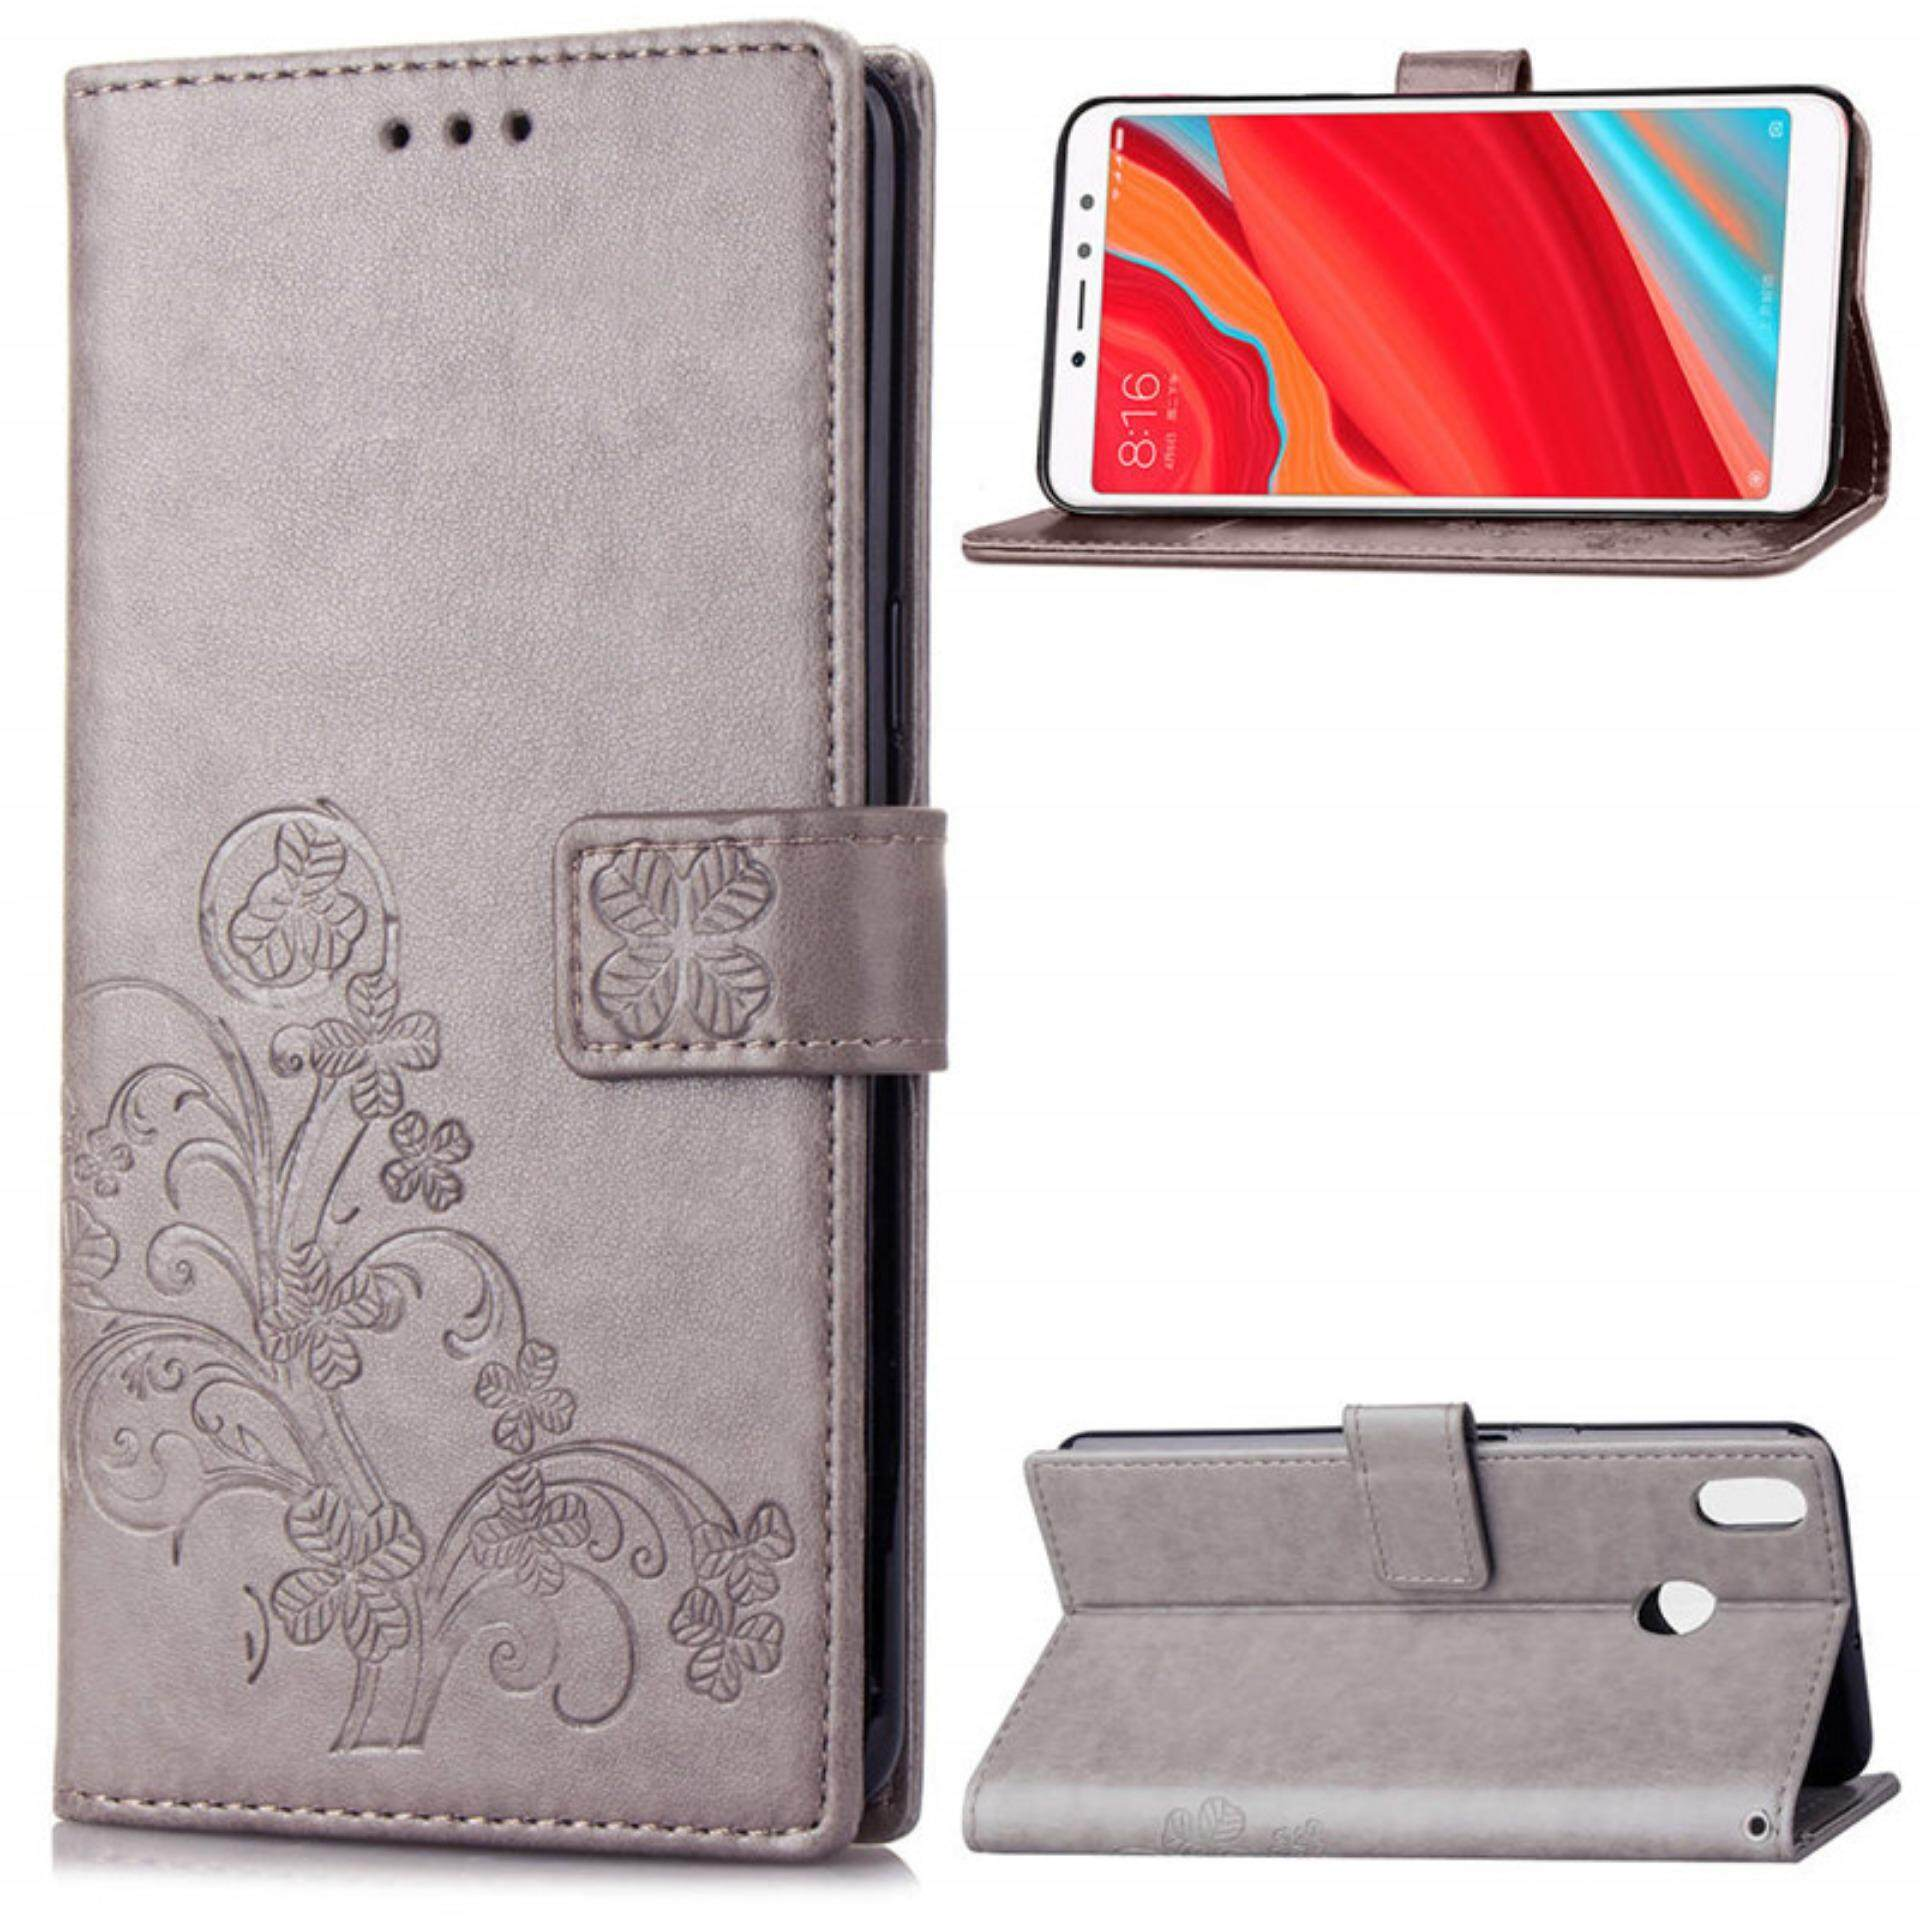 Flower Debossed Leather Flip Cover Case for Xiaomi Redmi S2